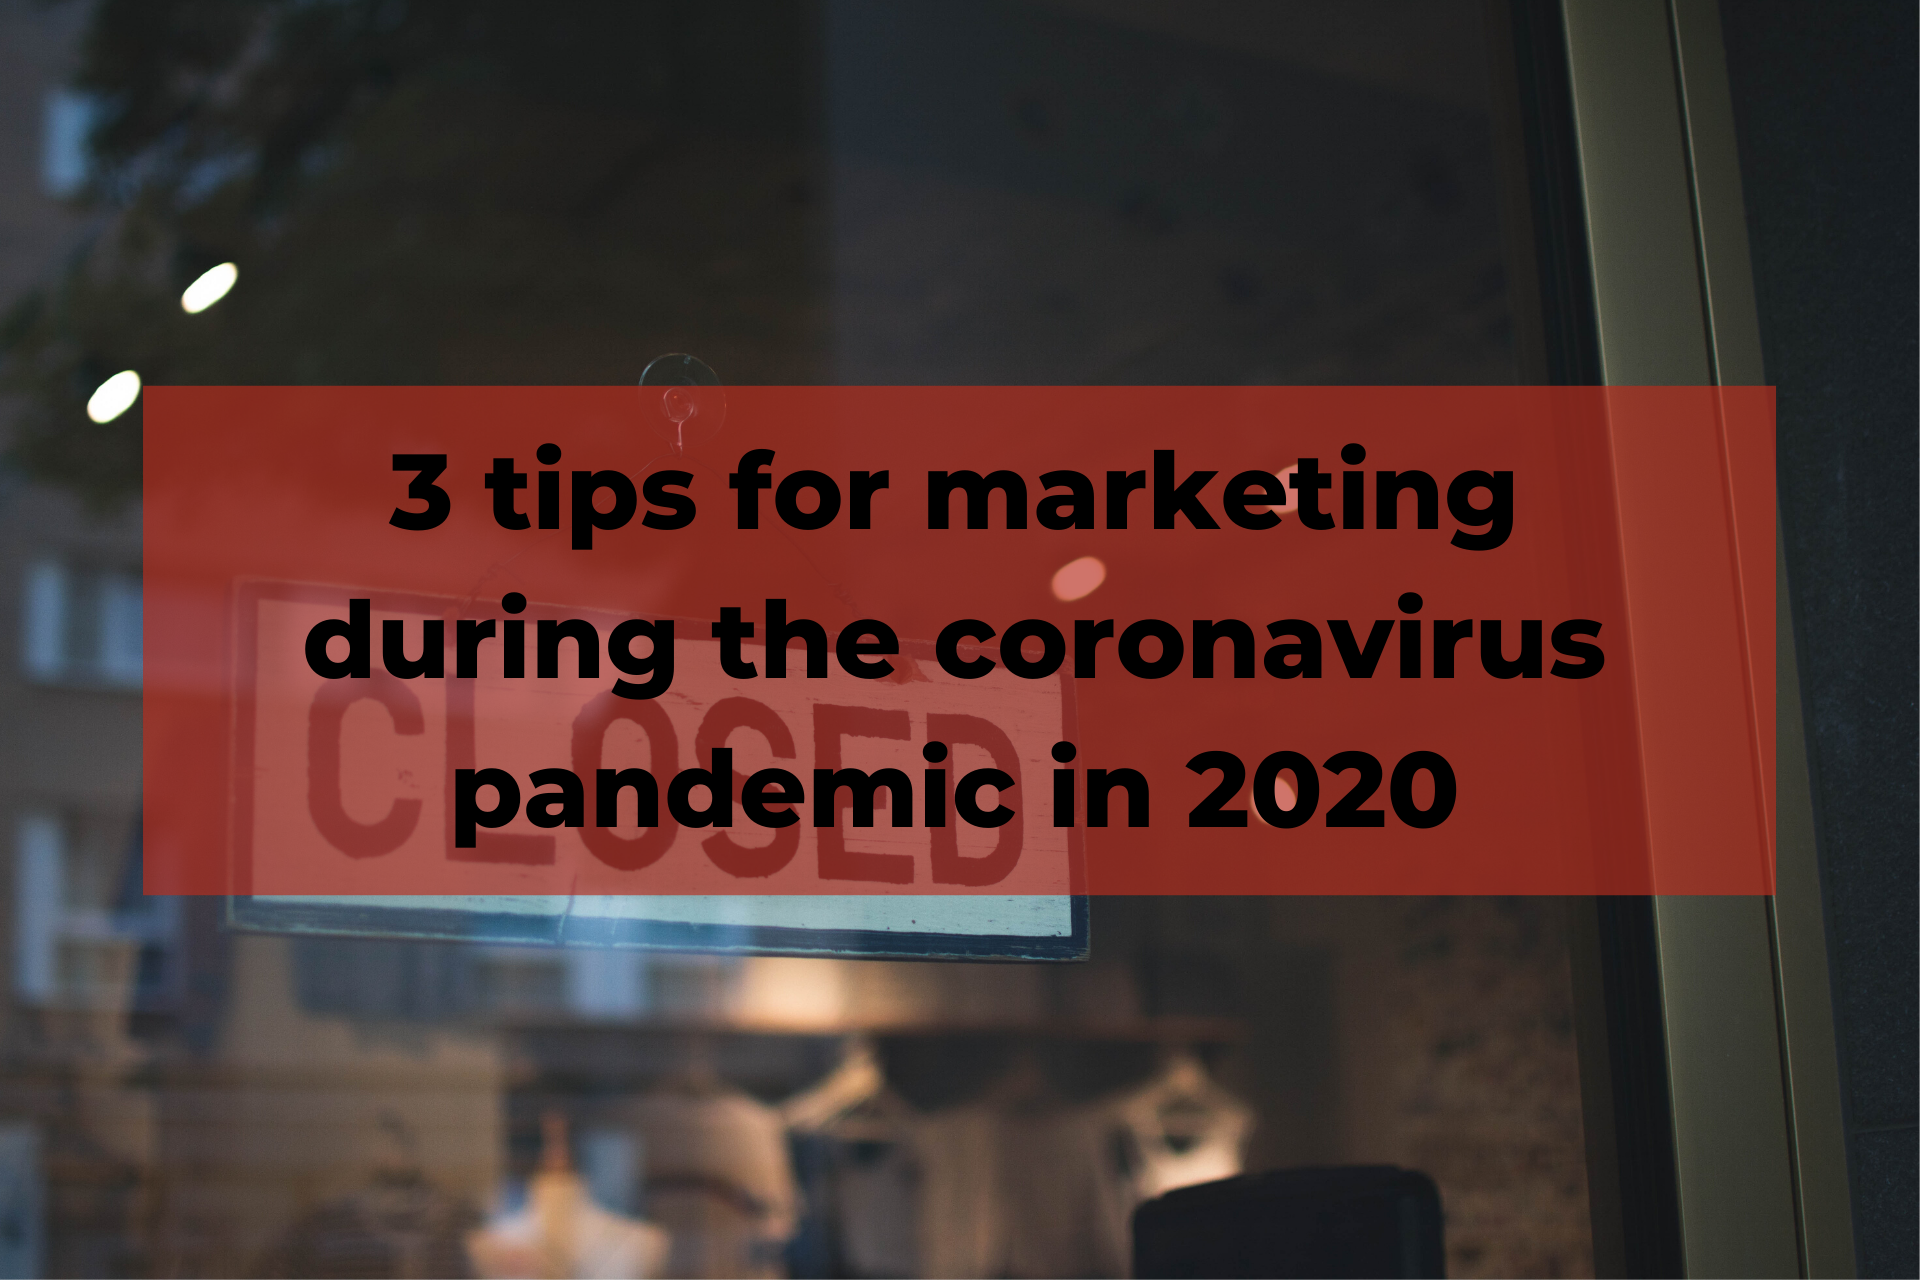 3 tips for marketing during the coronavirus pandemic in 2020